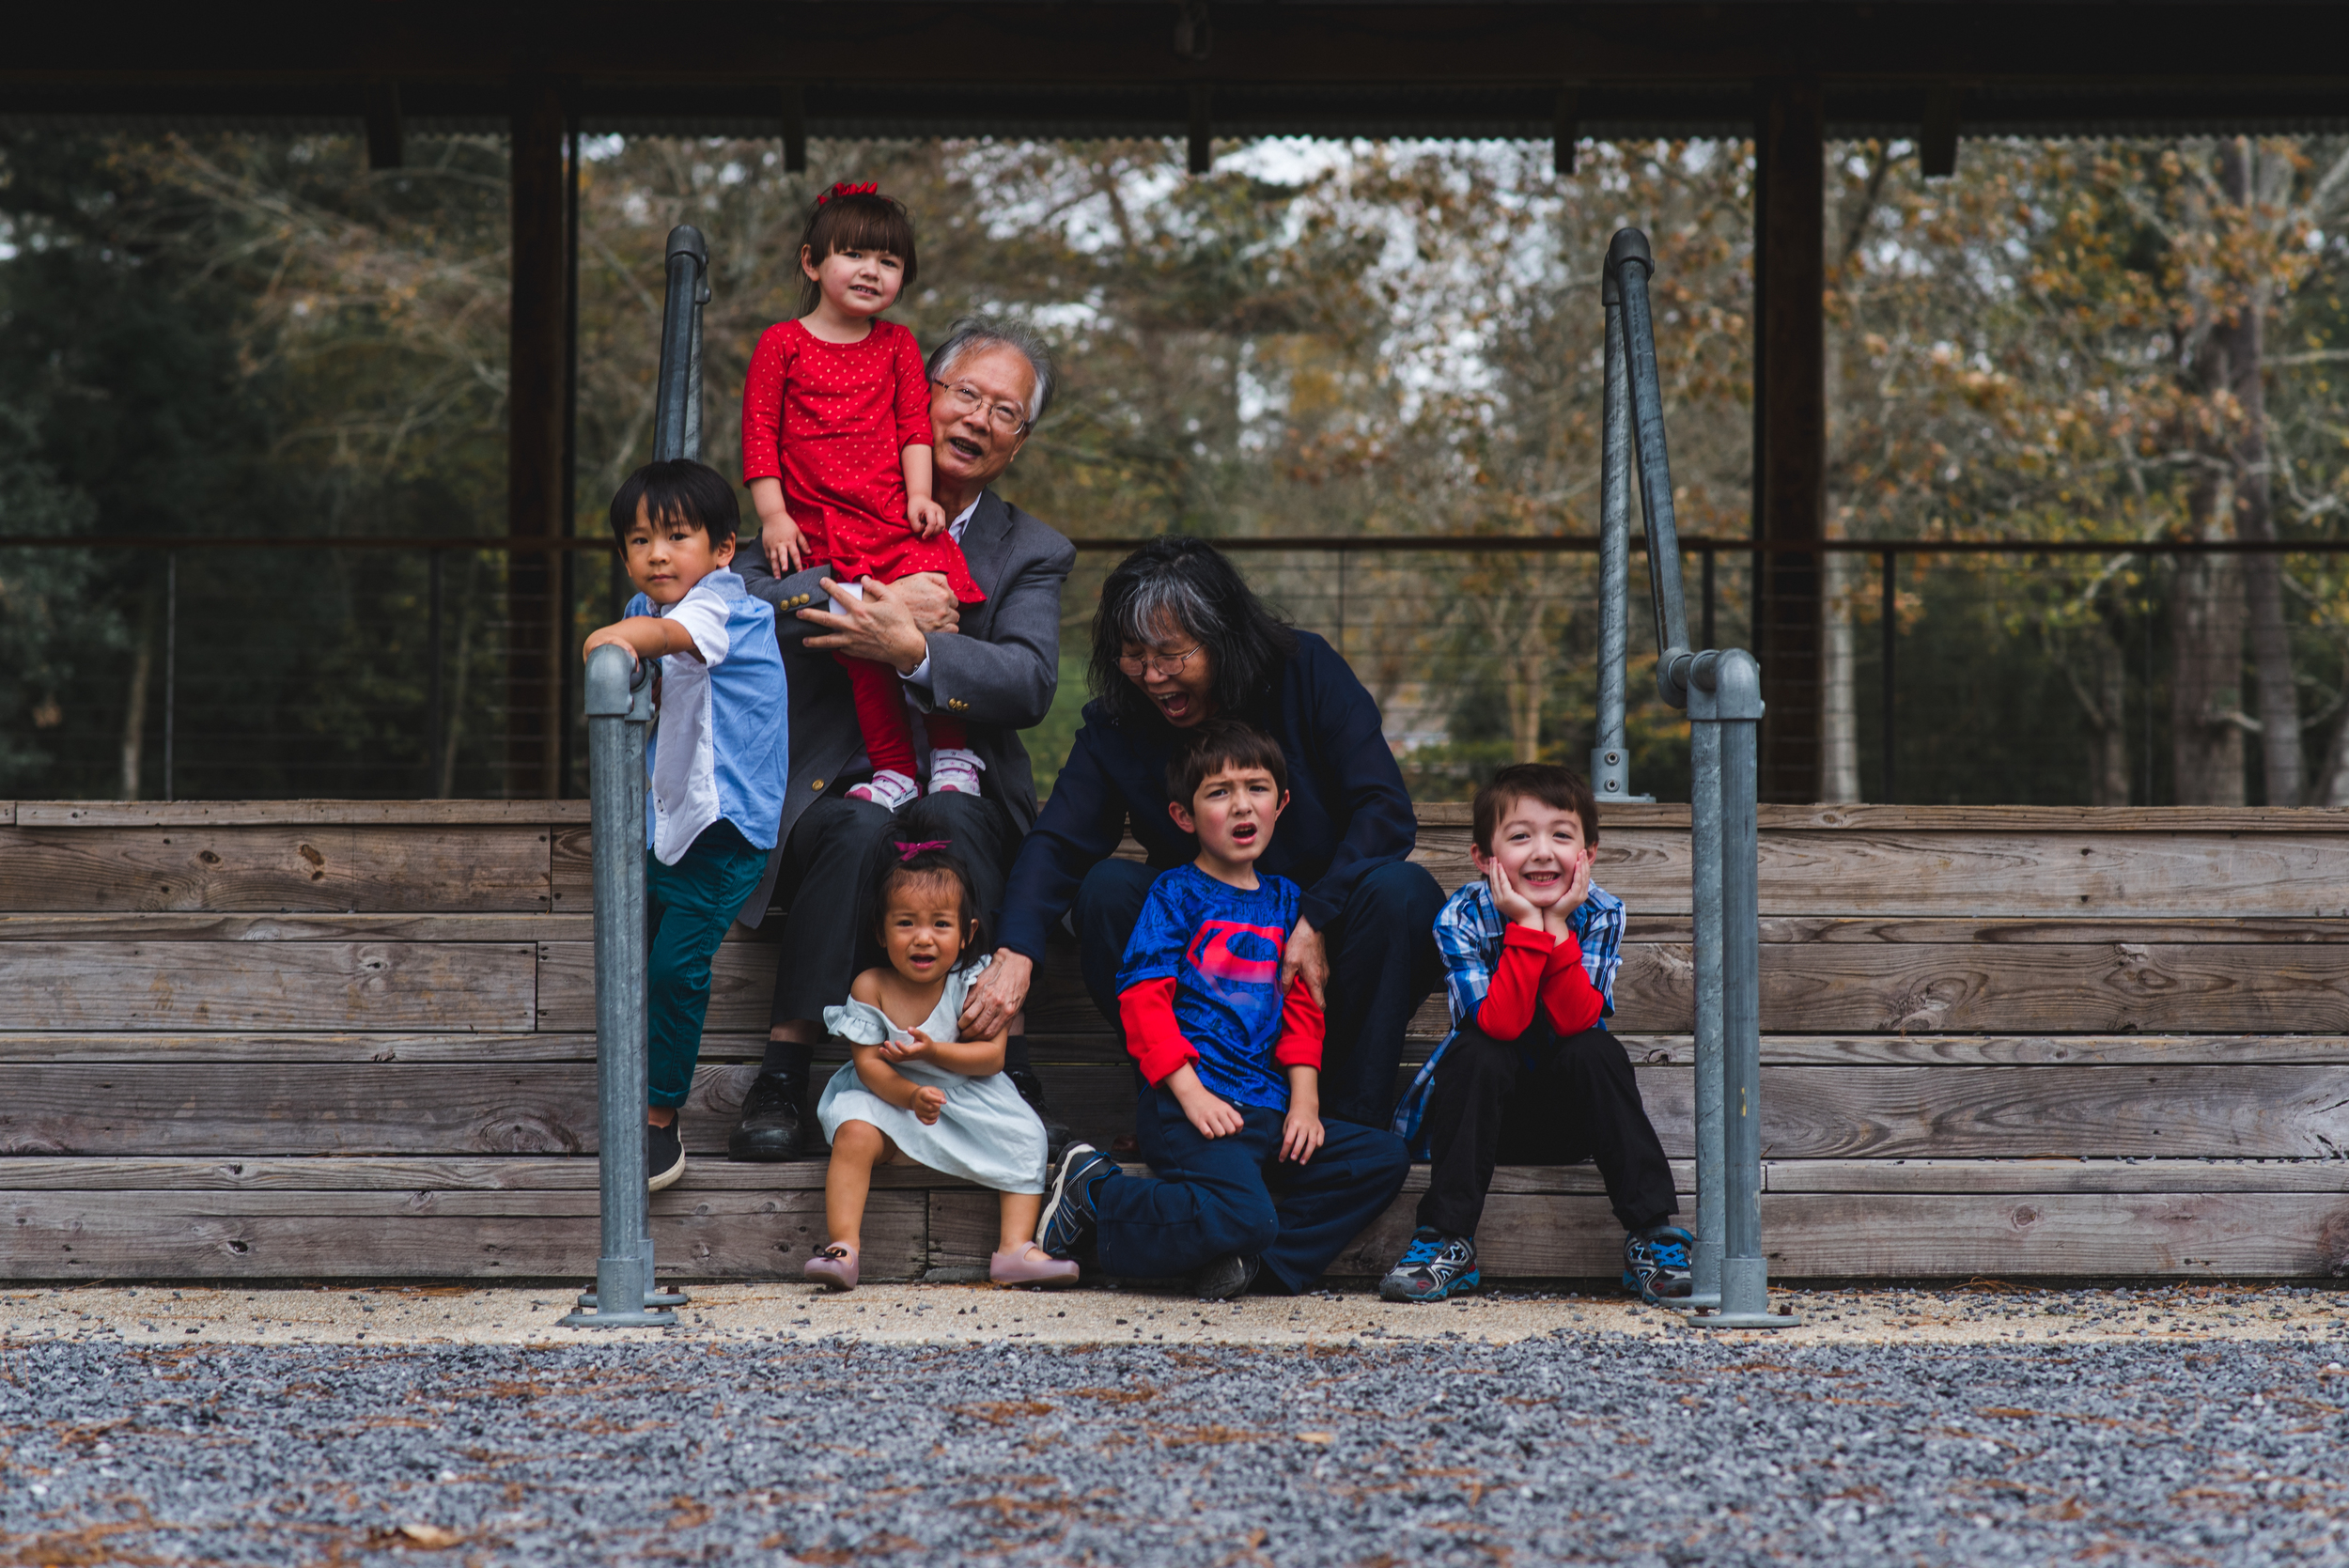 baton rouge lifestyle family photography- autistic